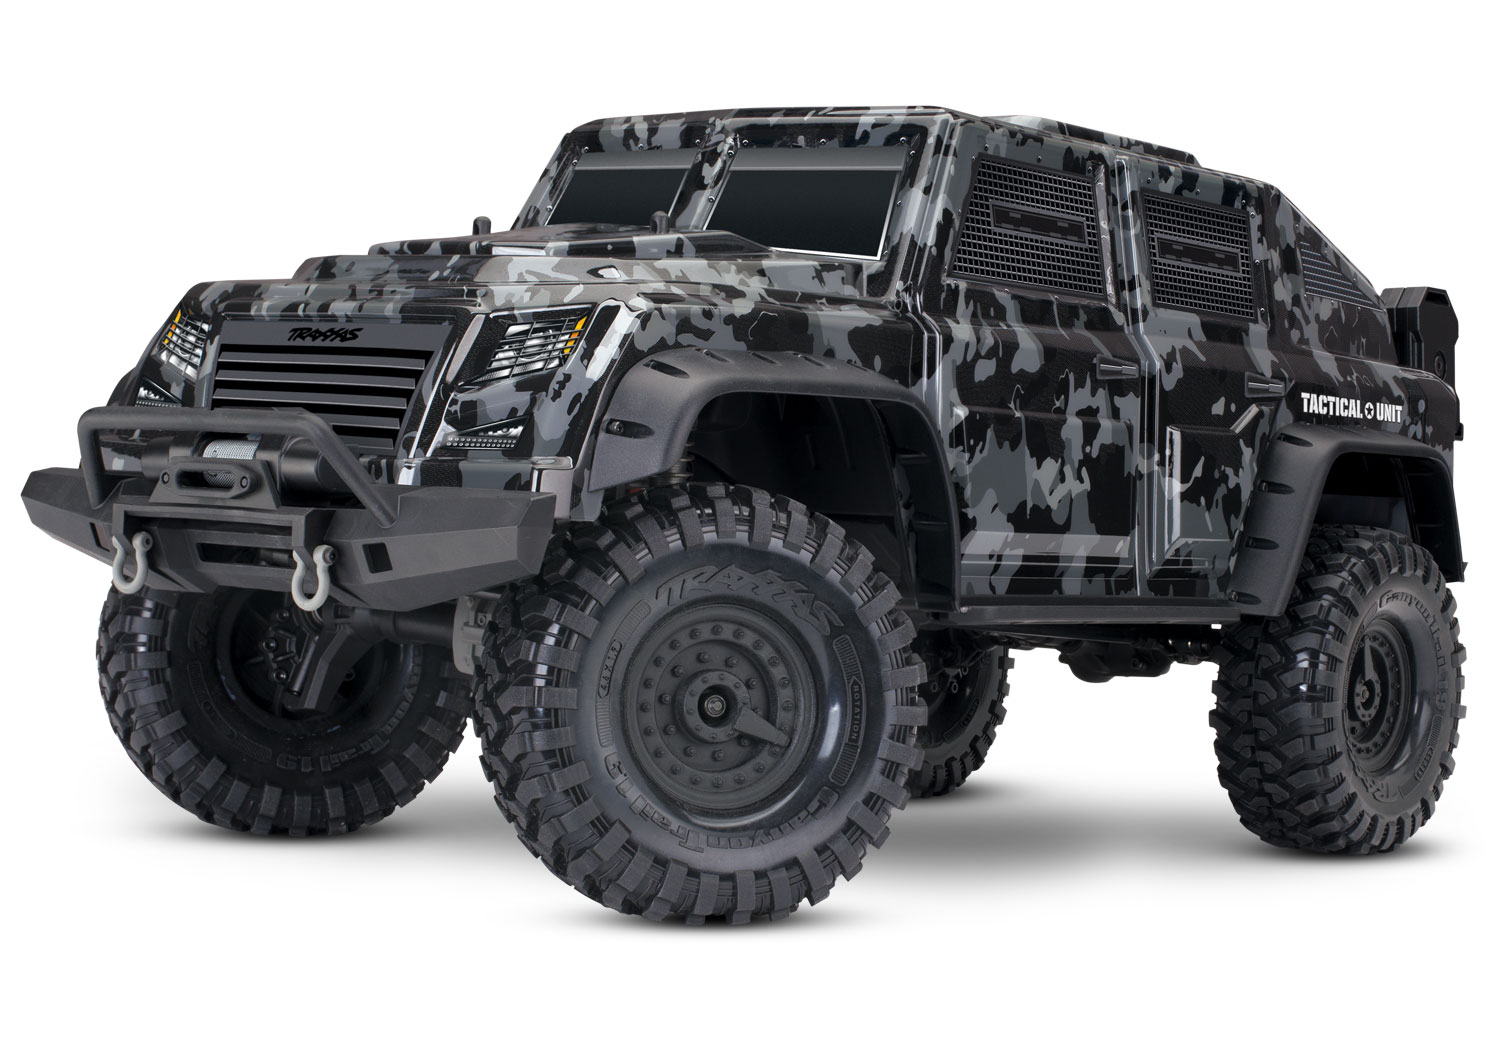 Traxxas TRX-4 Tactical Unit Crawler